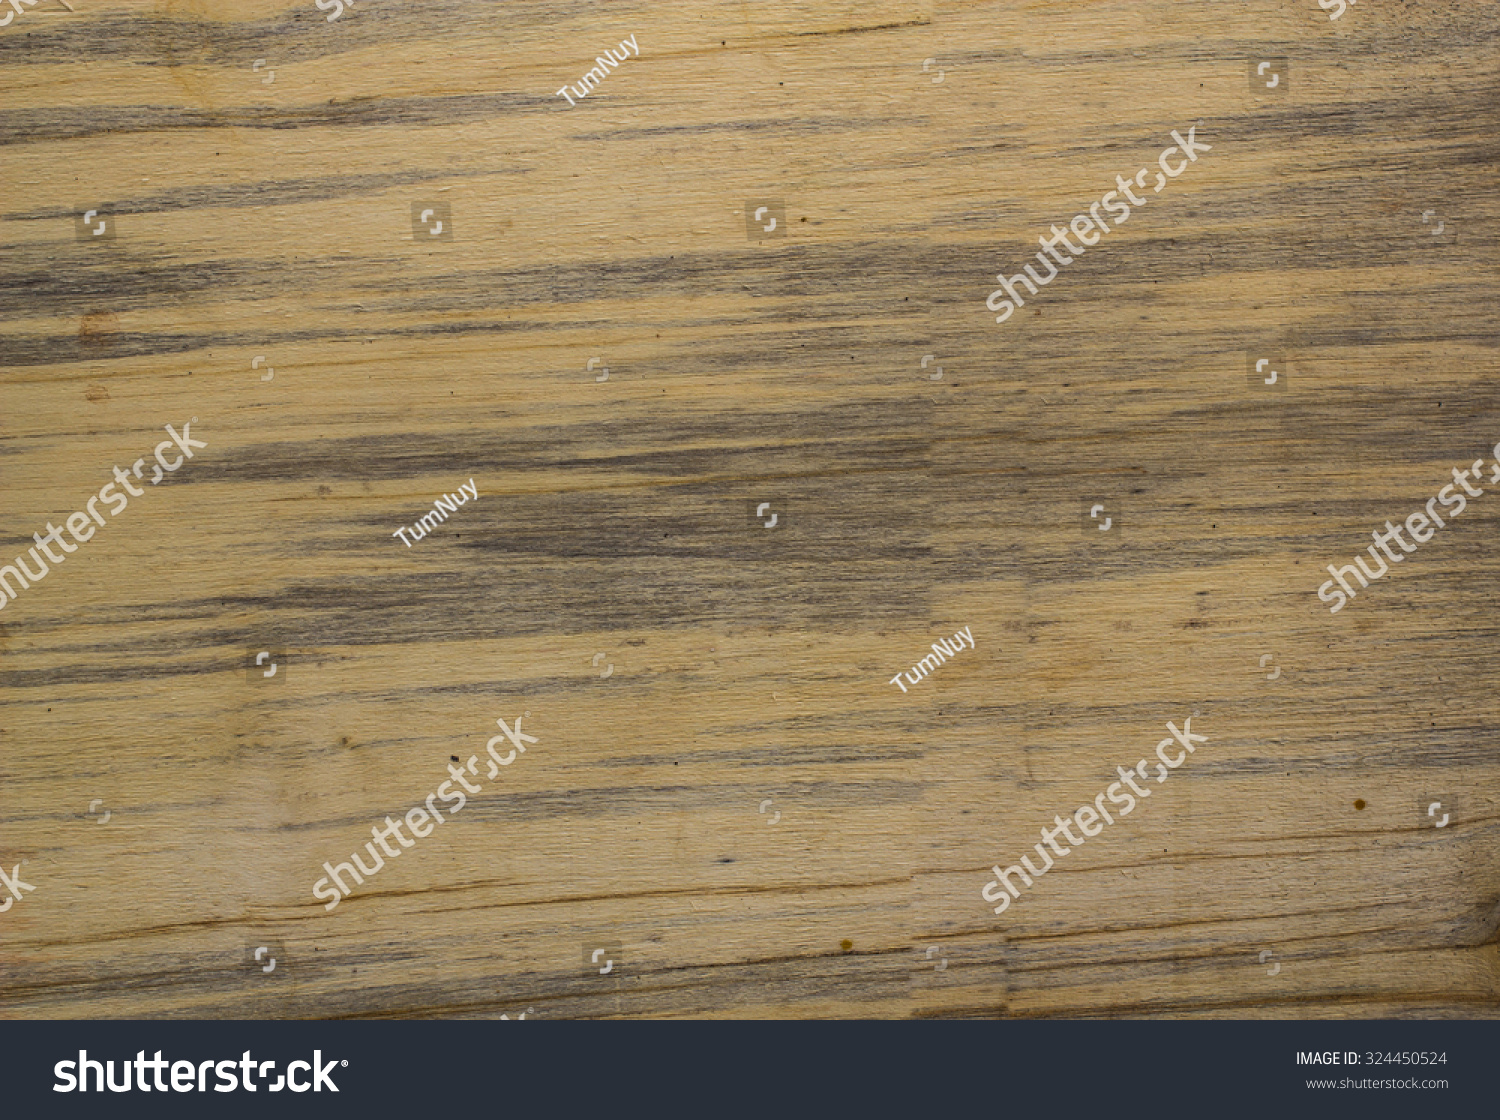 plywood surface background. #324450524